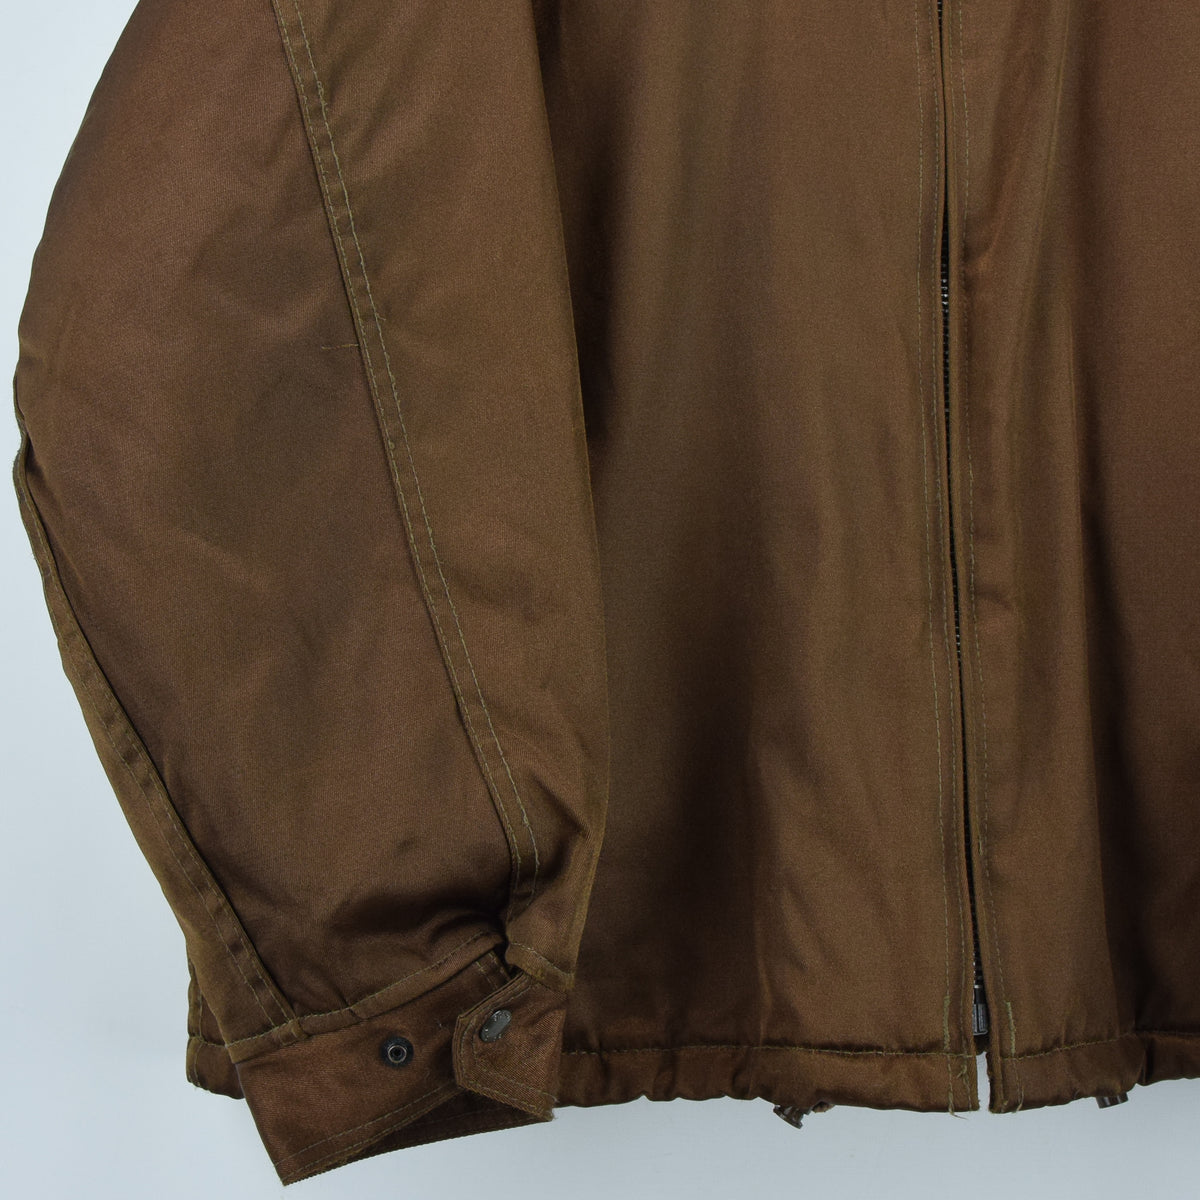 Vintage Schott NYC Men's Security Bronze Brown Bomber Jacket XL / XXL front hem